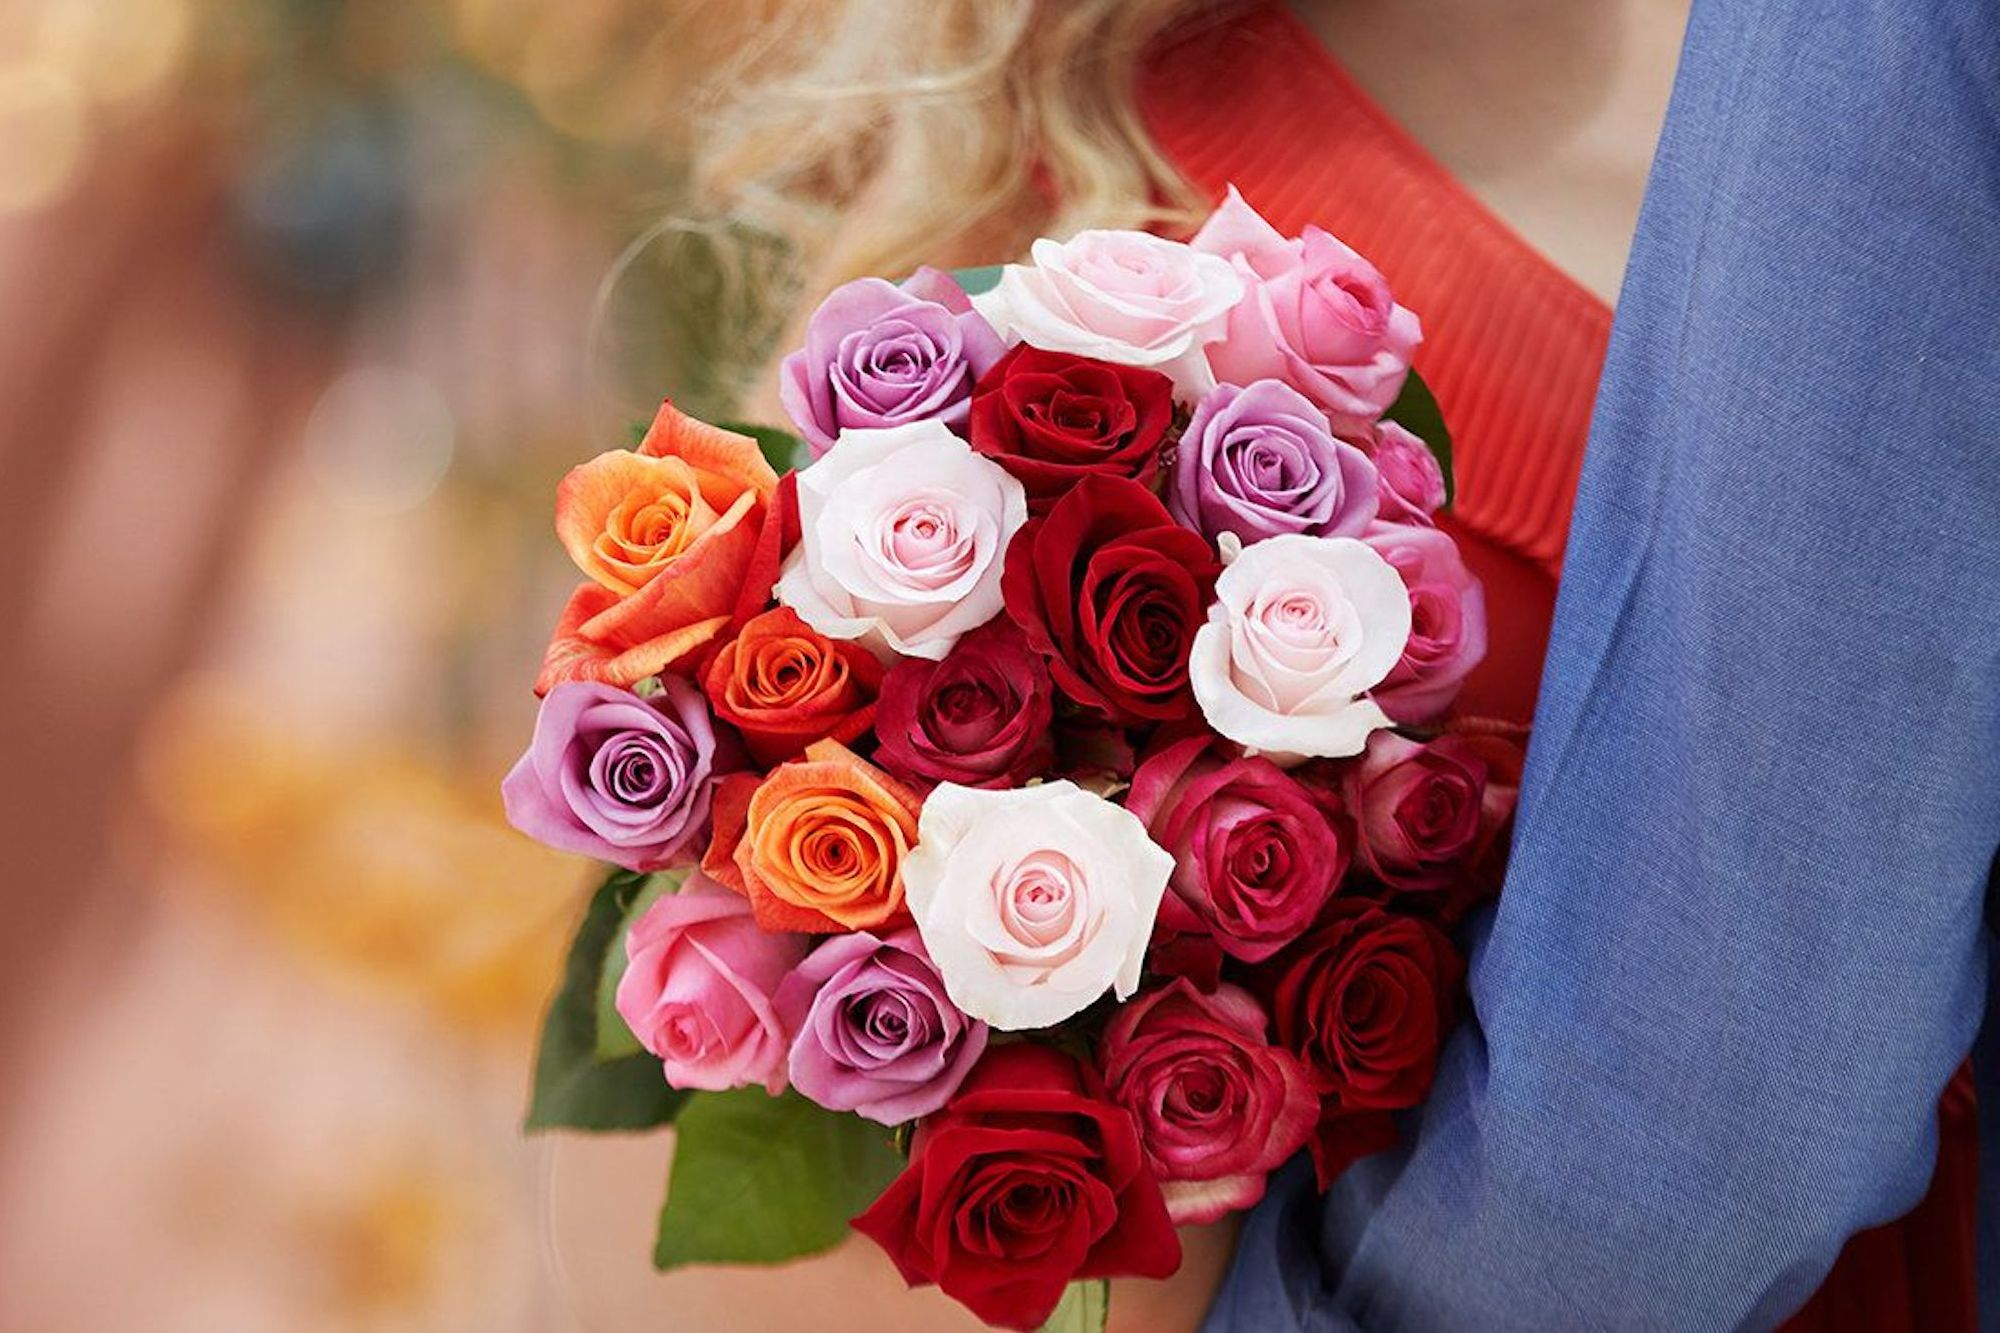 These Flower-Delivery Services Help Take the Stress Out of Valentine's Day